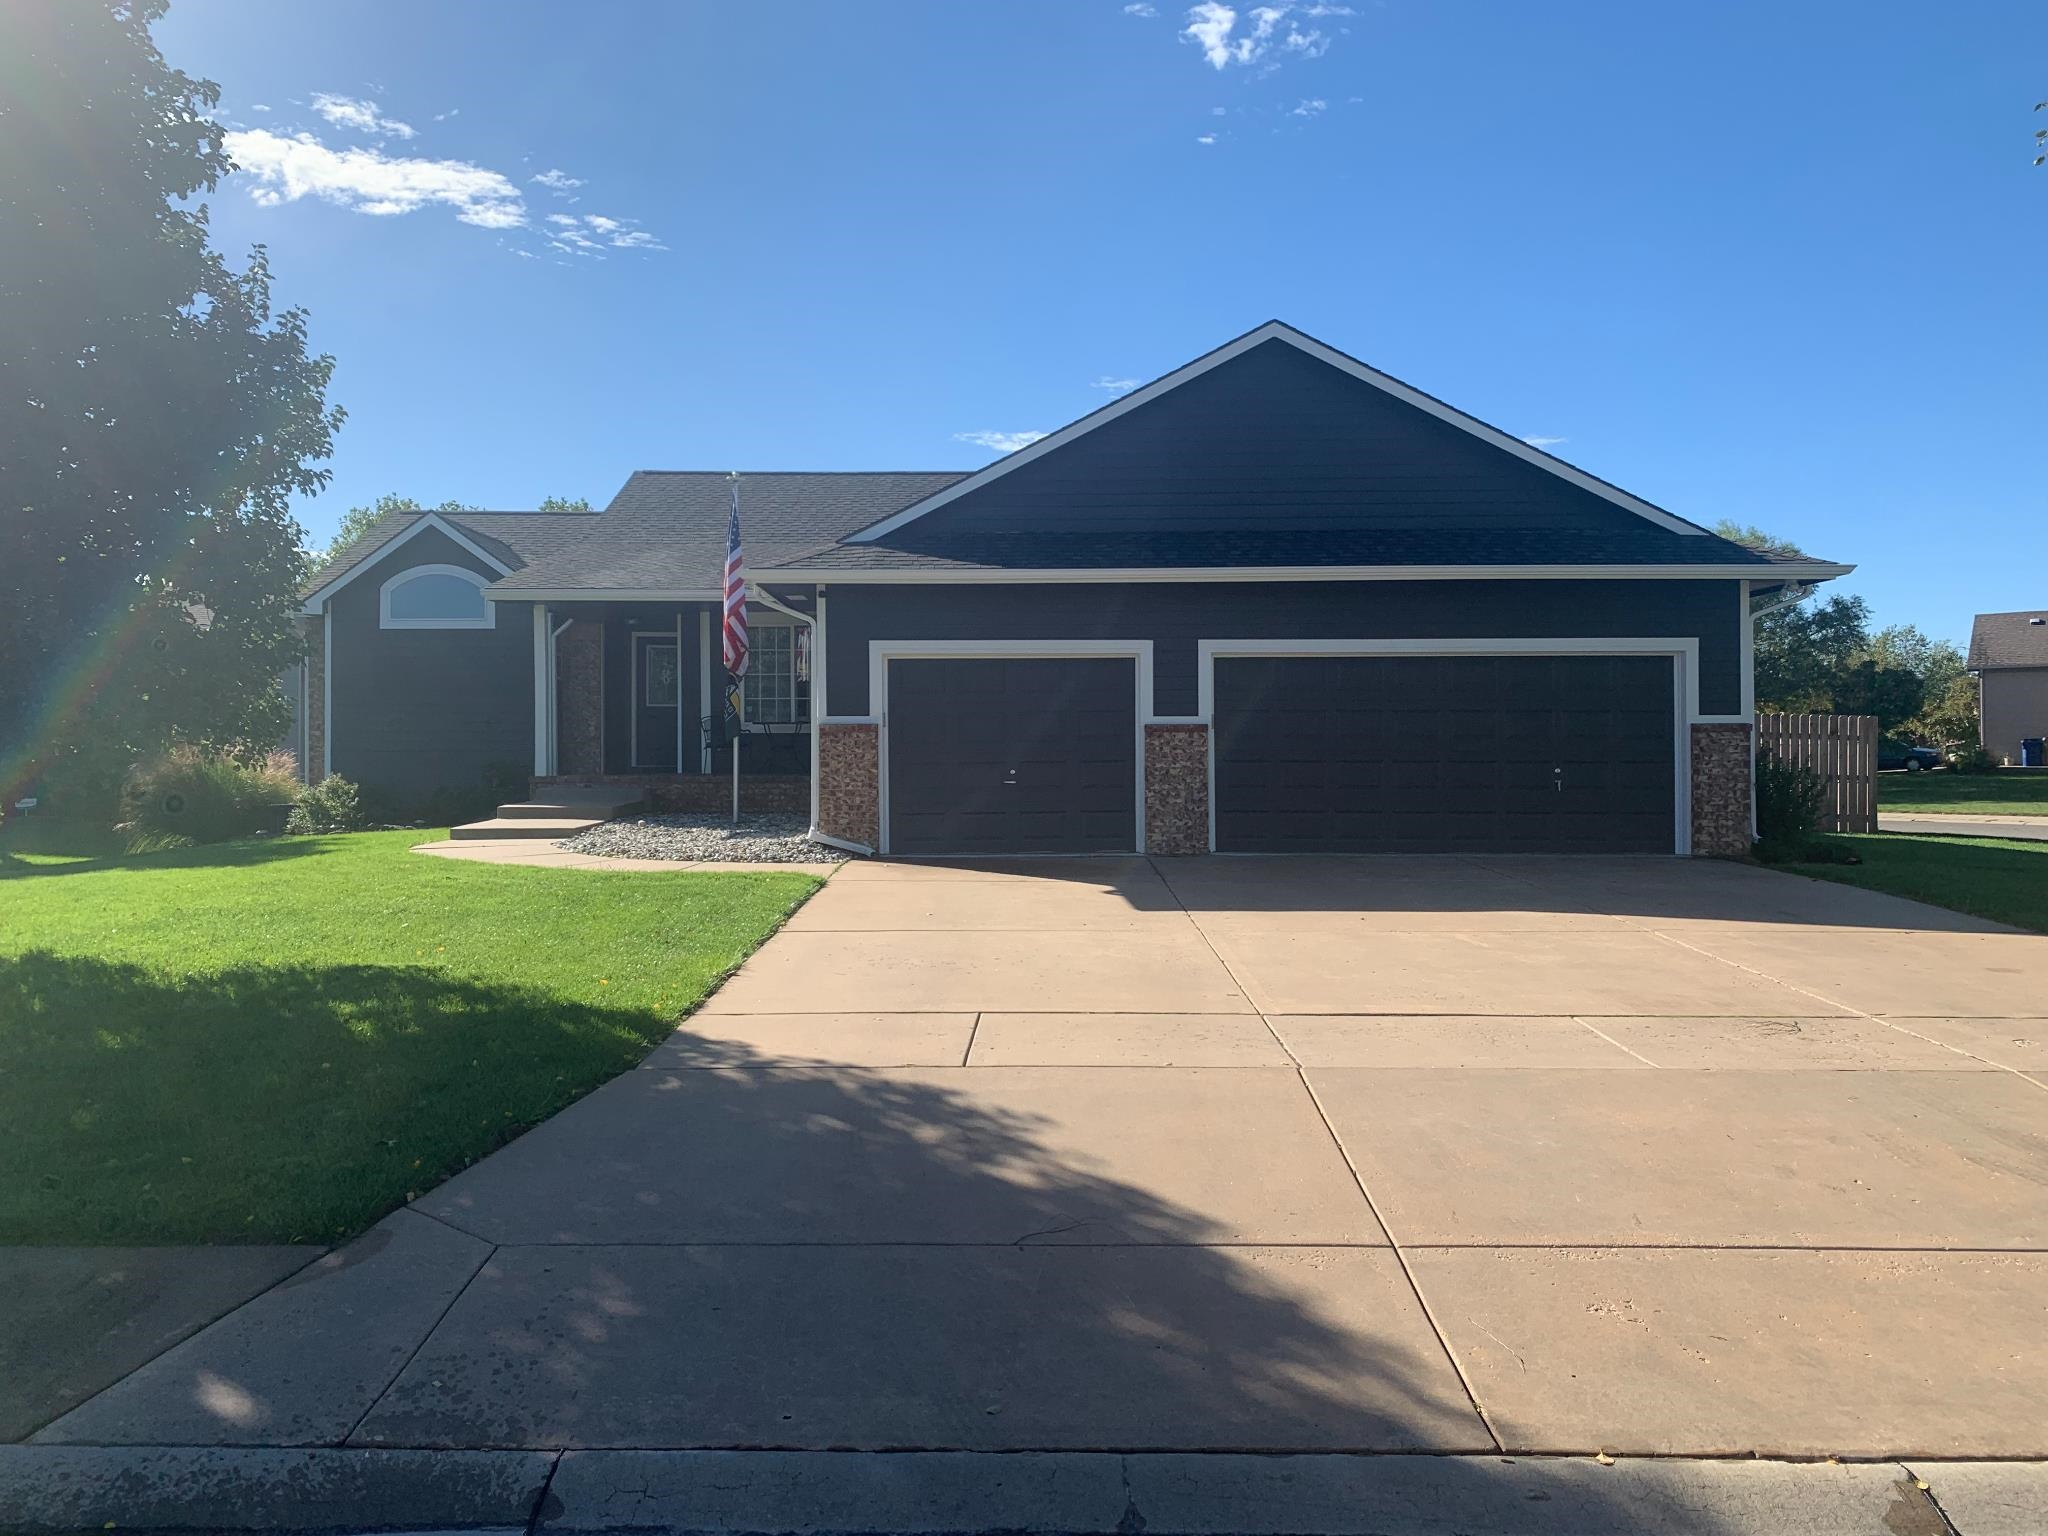 Welcome to this 3 bedroom, 3 bath home in Amber Ridge Addition. Before you enter you will notice the